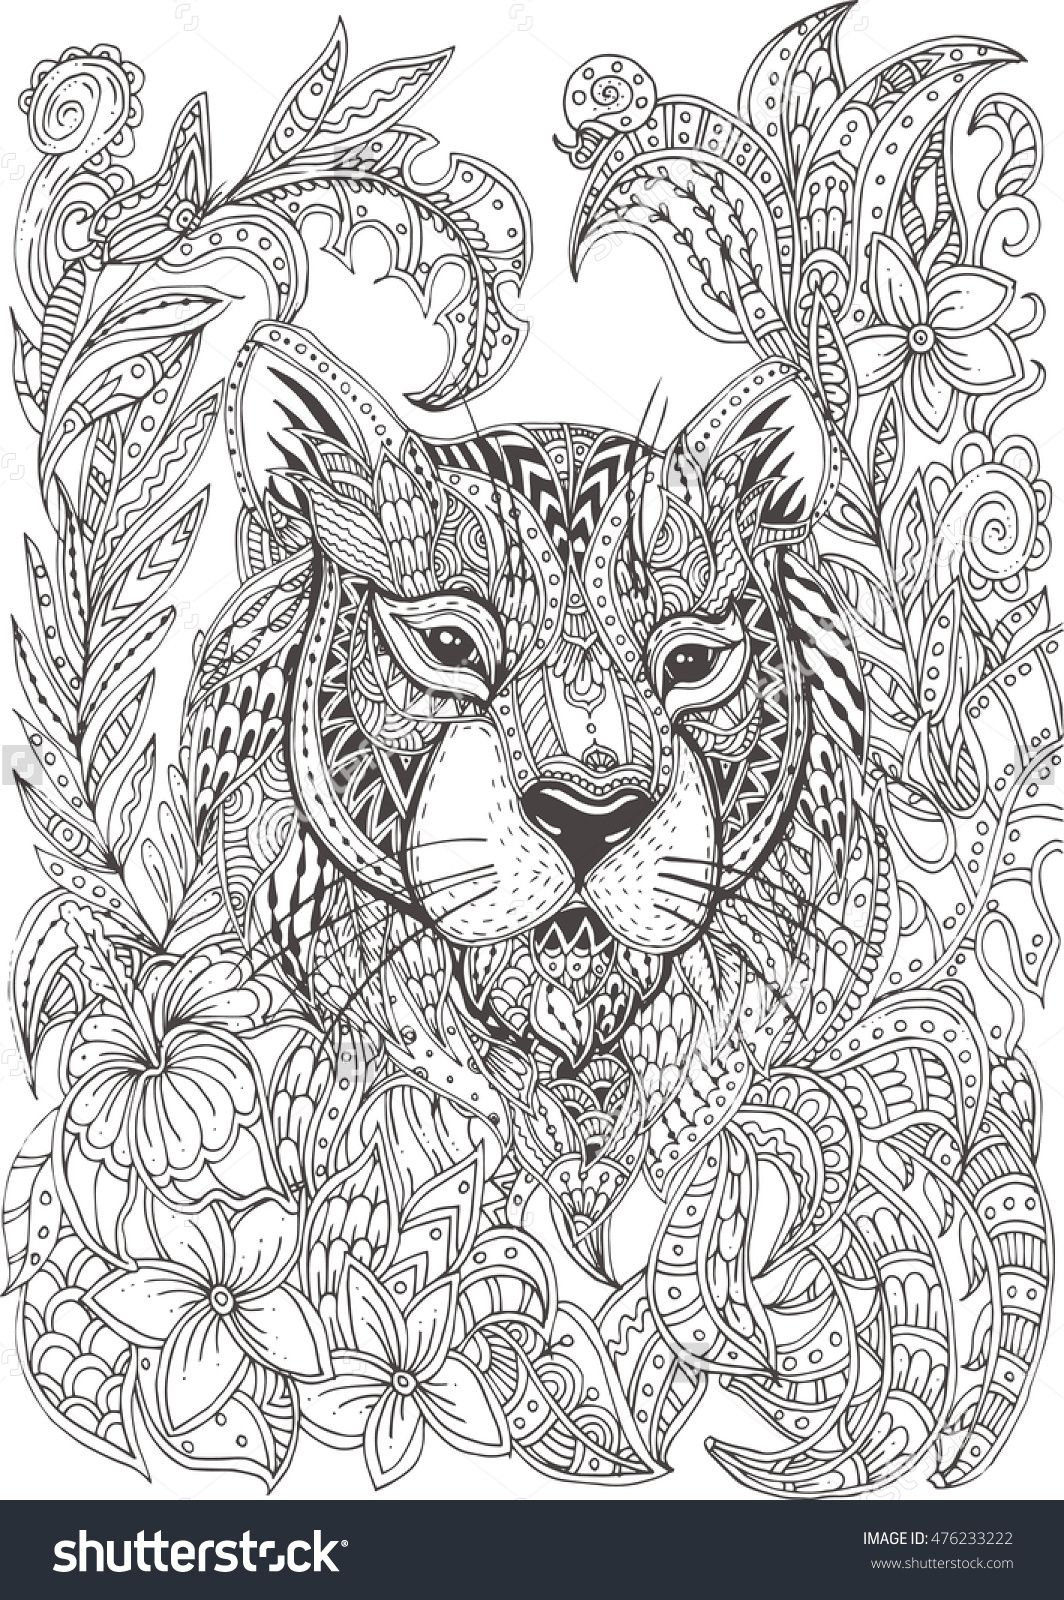 Pin On Coloring Pages For Young And Old